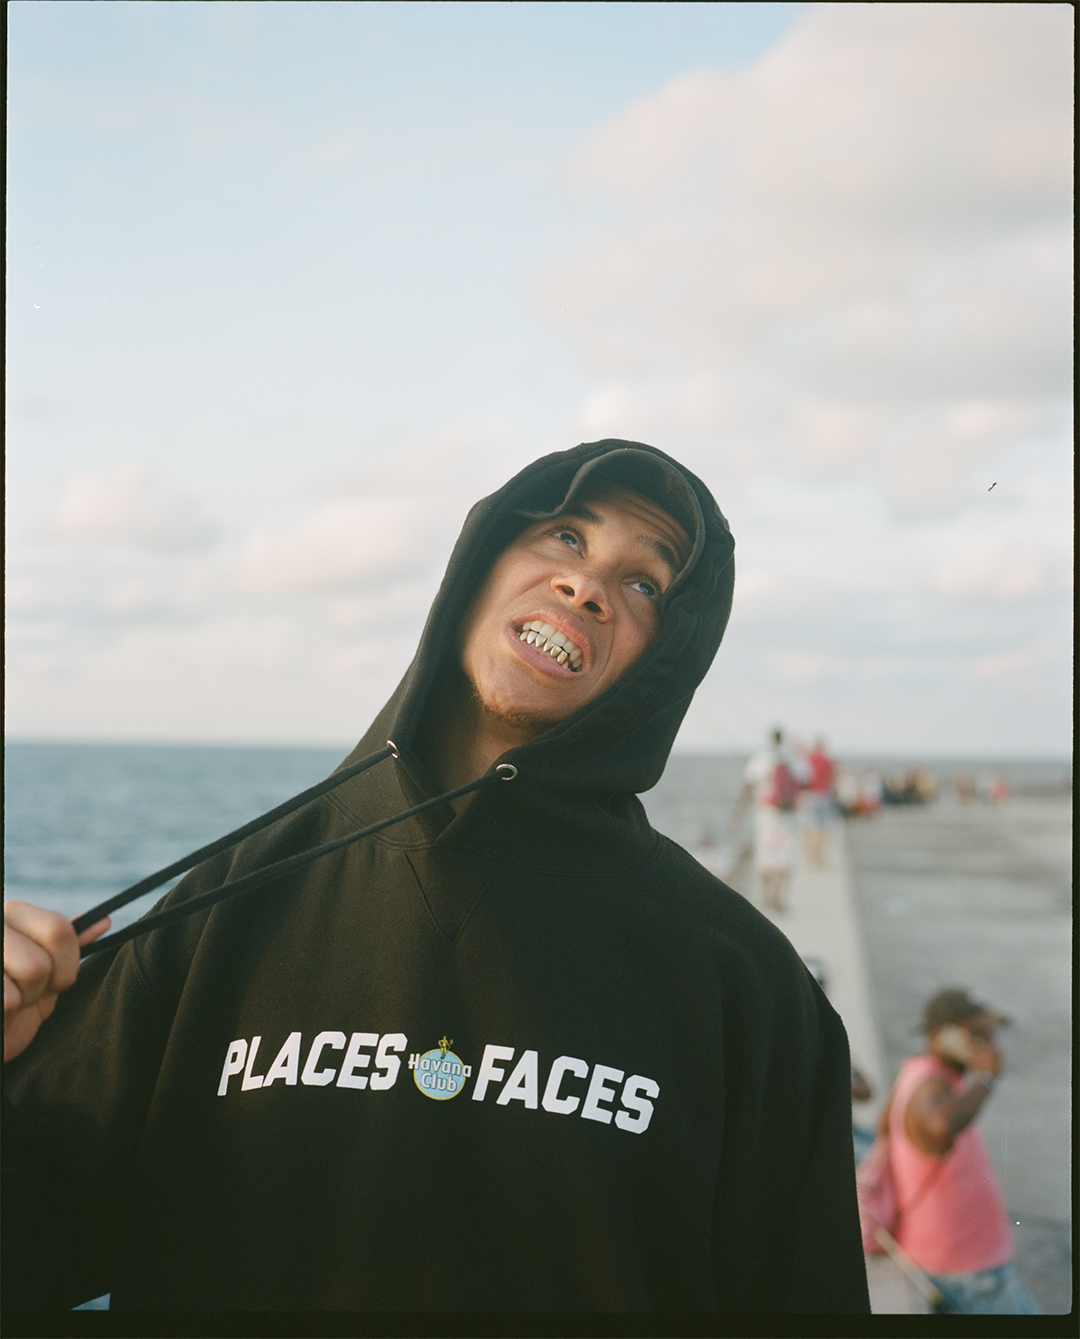 shit-magazine-places-faces-havana-club-009